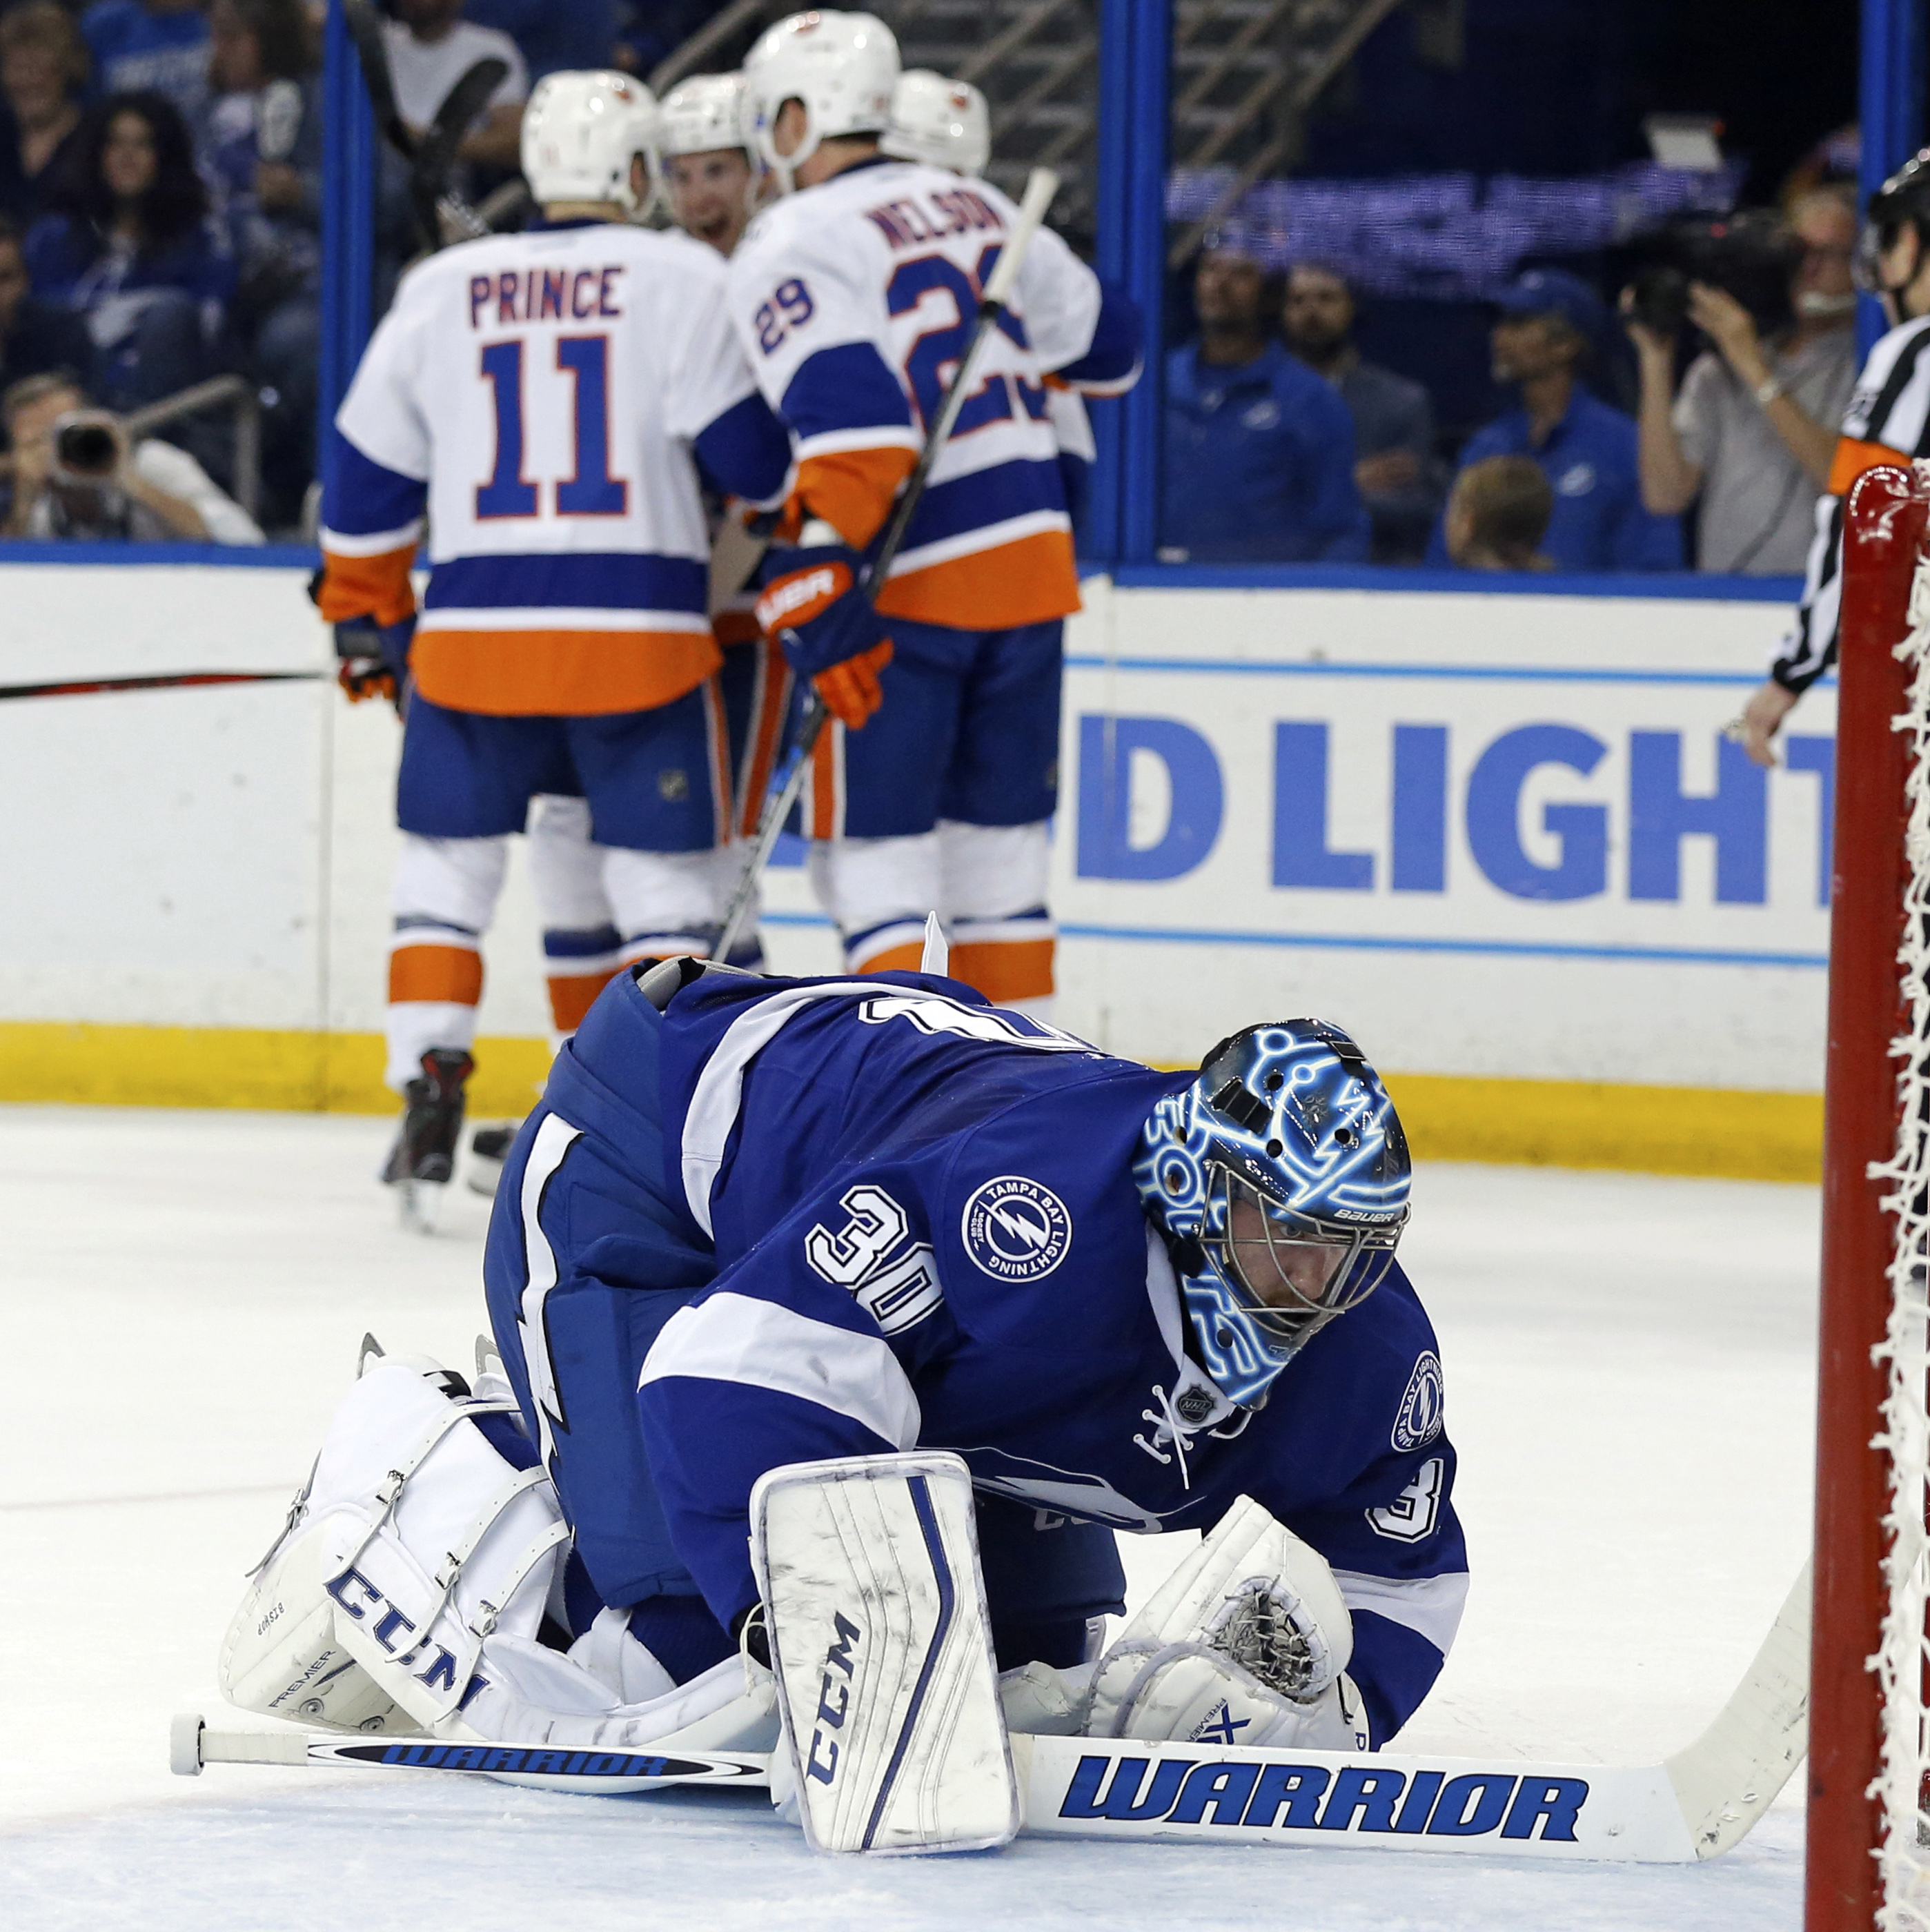 TAMPA, FL - APRIL 27:  Ben Bishop #30 of the Tampa Bay Lightning reacts as members of the New York Islanders celebrate a goal during the first period in Game One of the Eastern Conference Second Round during the 2016 NHL Stanley Cup Playoffs at Amalie Arena on April 27, 2016 in Tampa, Florida. (Photo by Mike Carlson/Getty Images)